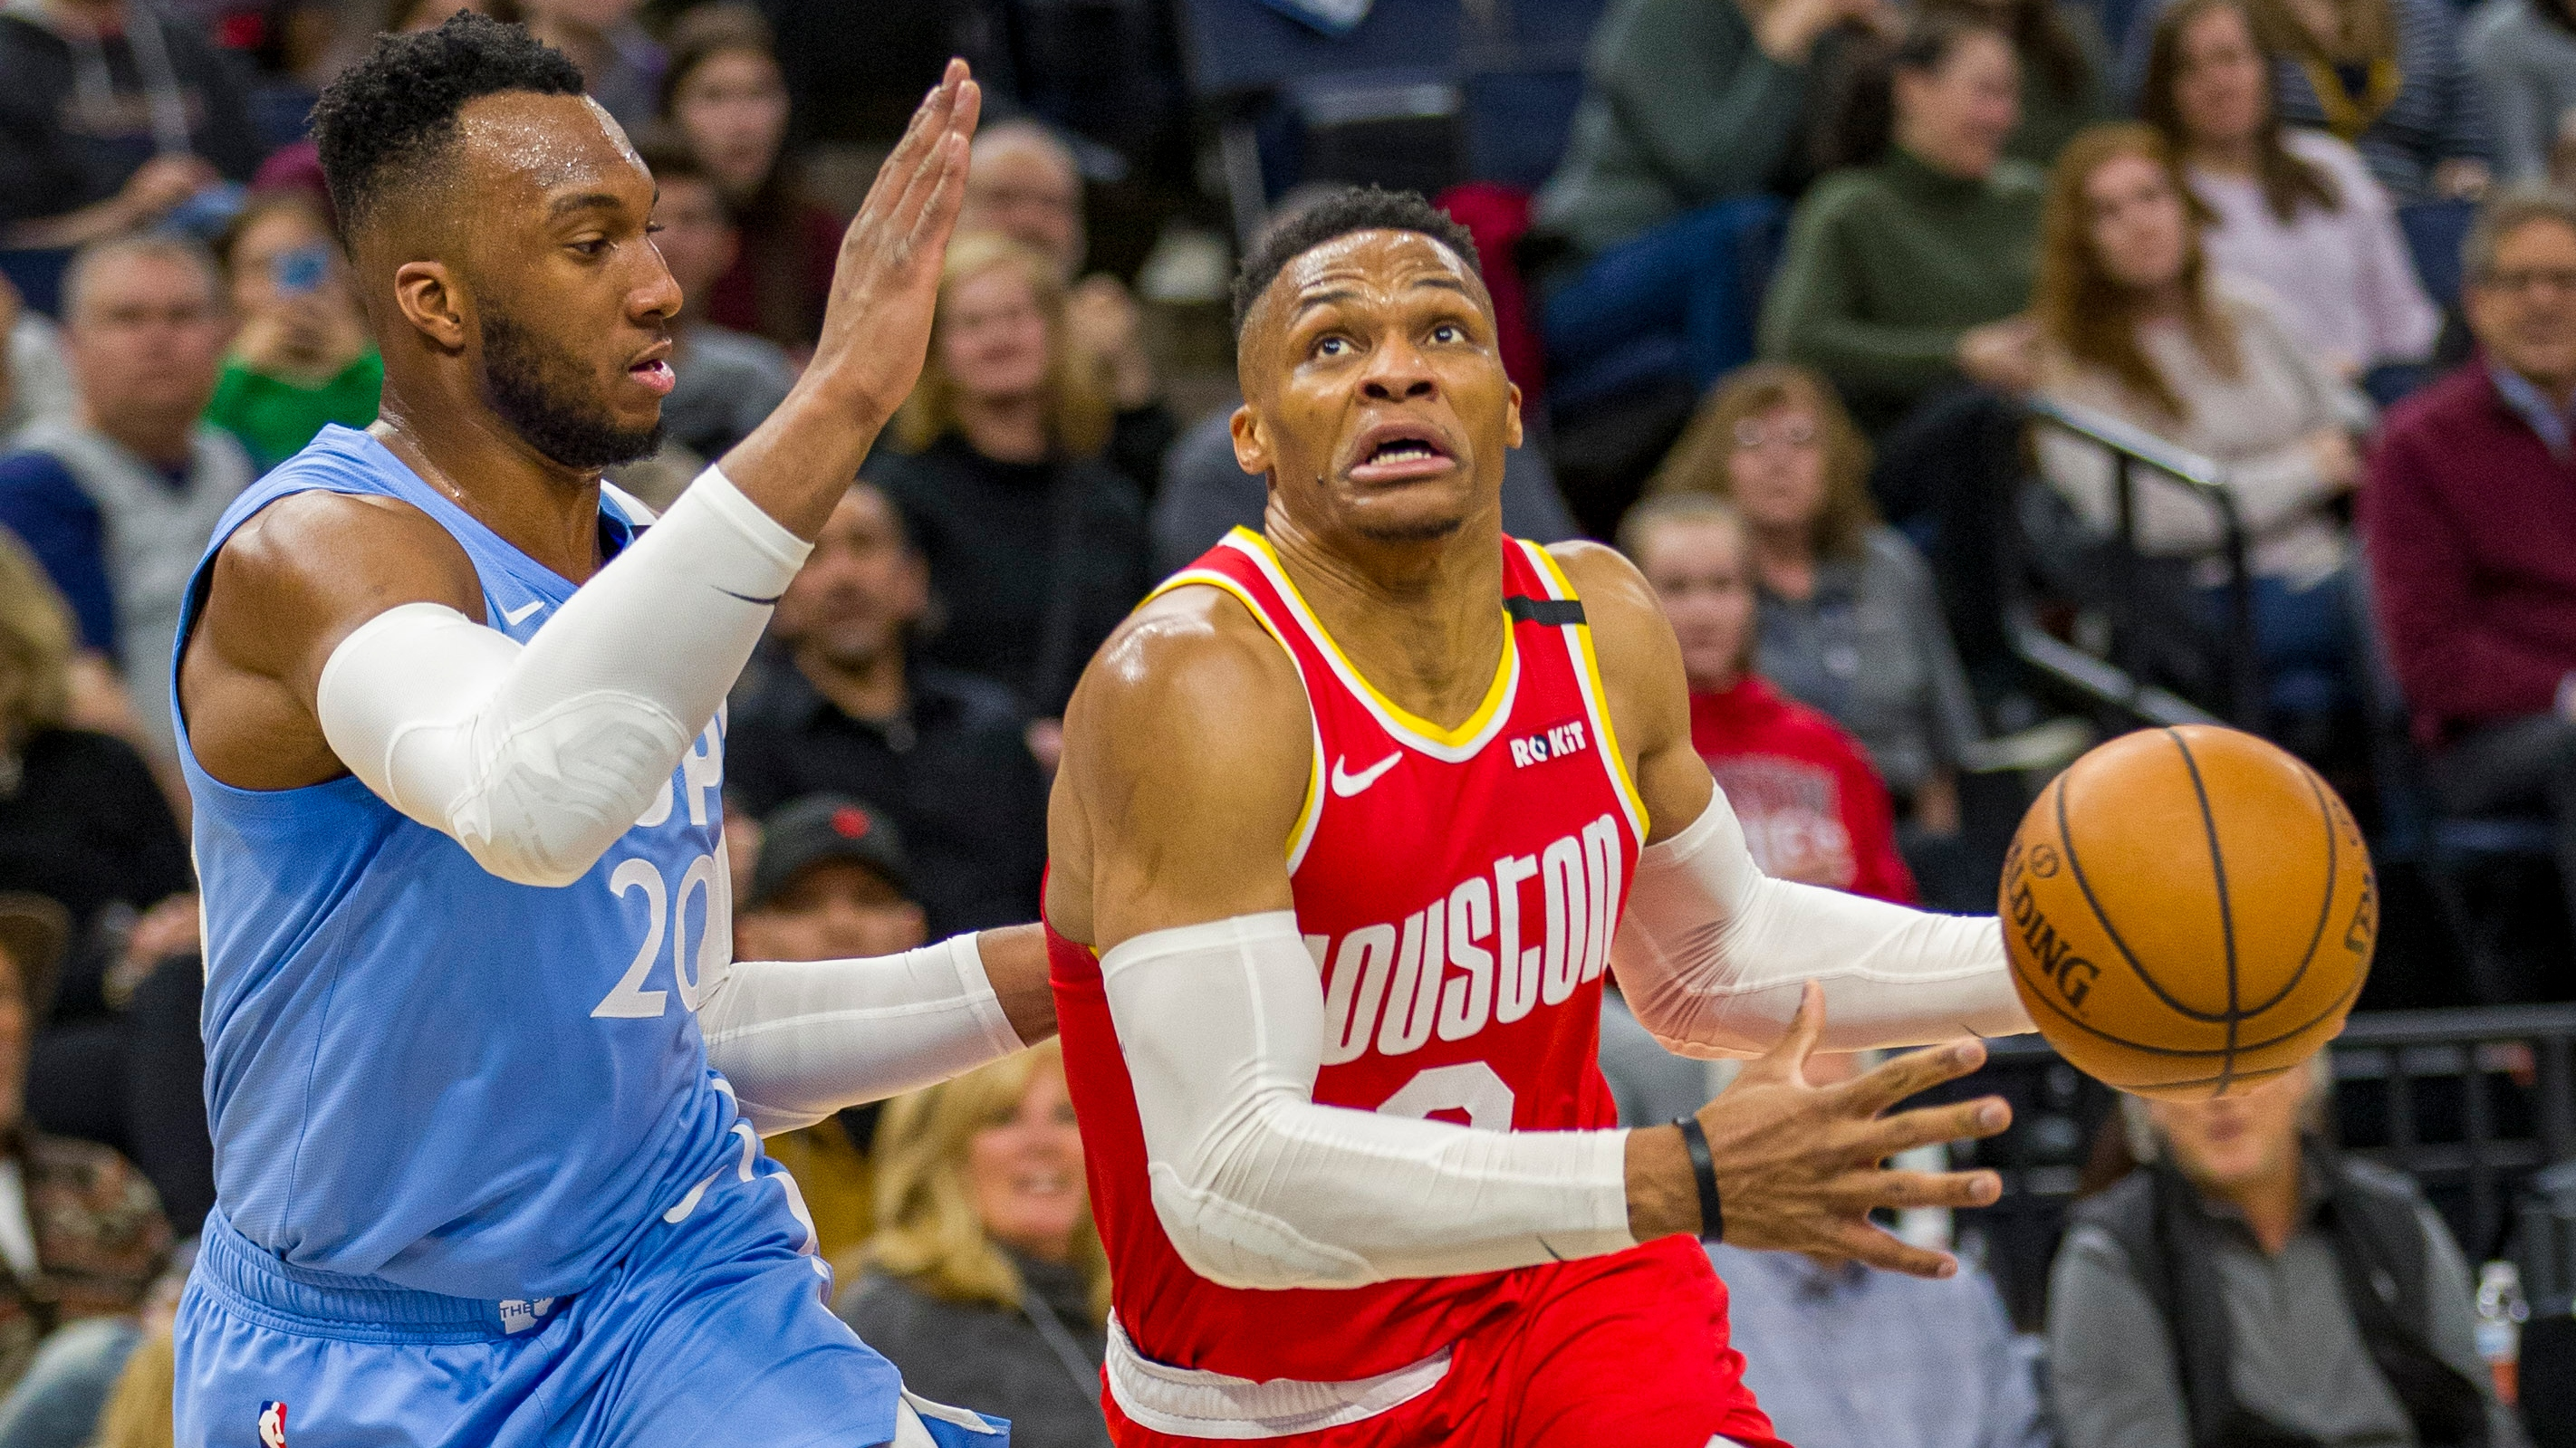 Russell Westbrook Continues Hot Stretch, Leads Rockets Past Timberwolves